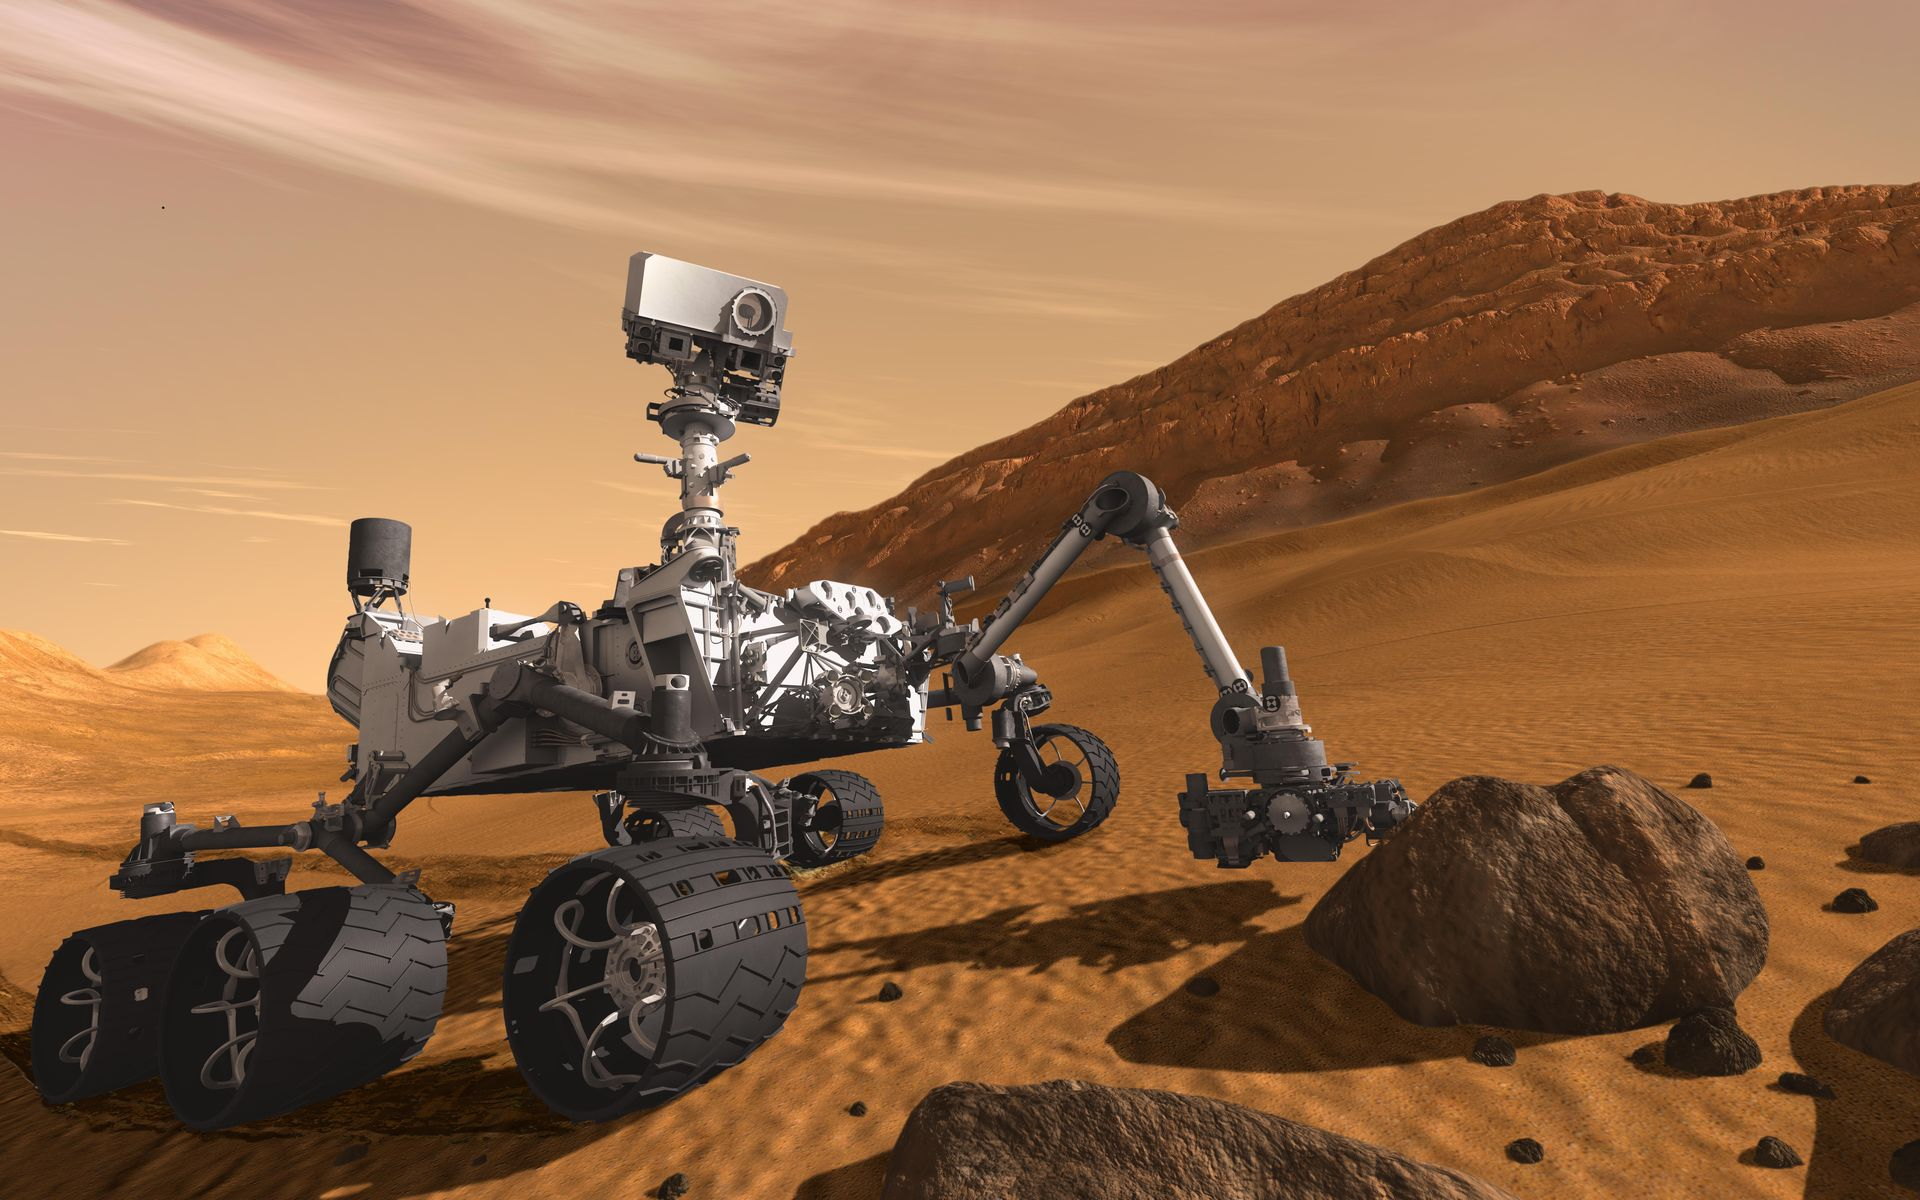 Space Images Curiosity The Next Mars Rover Artists Concept 1920x1200